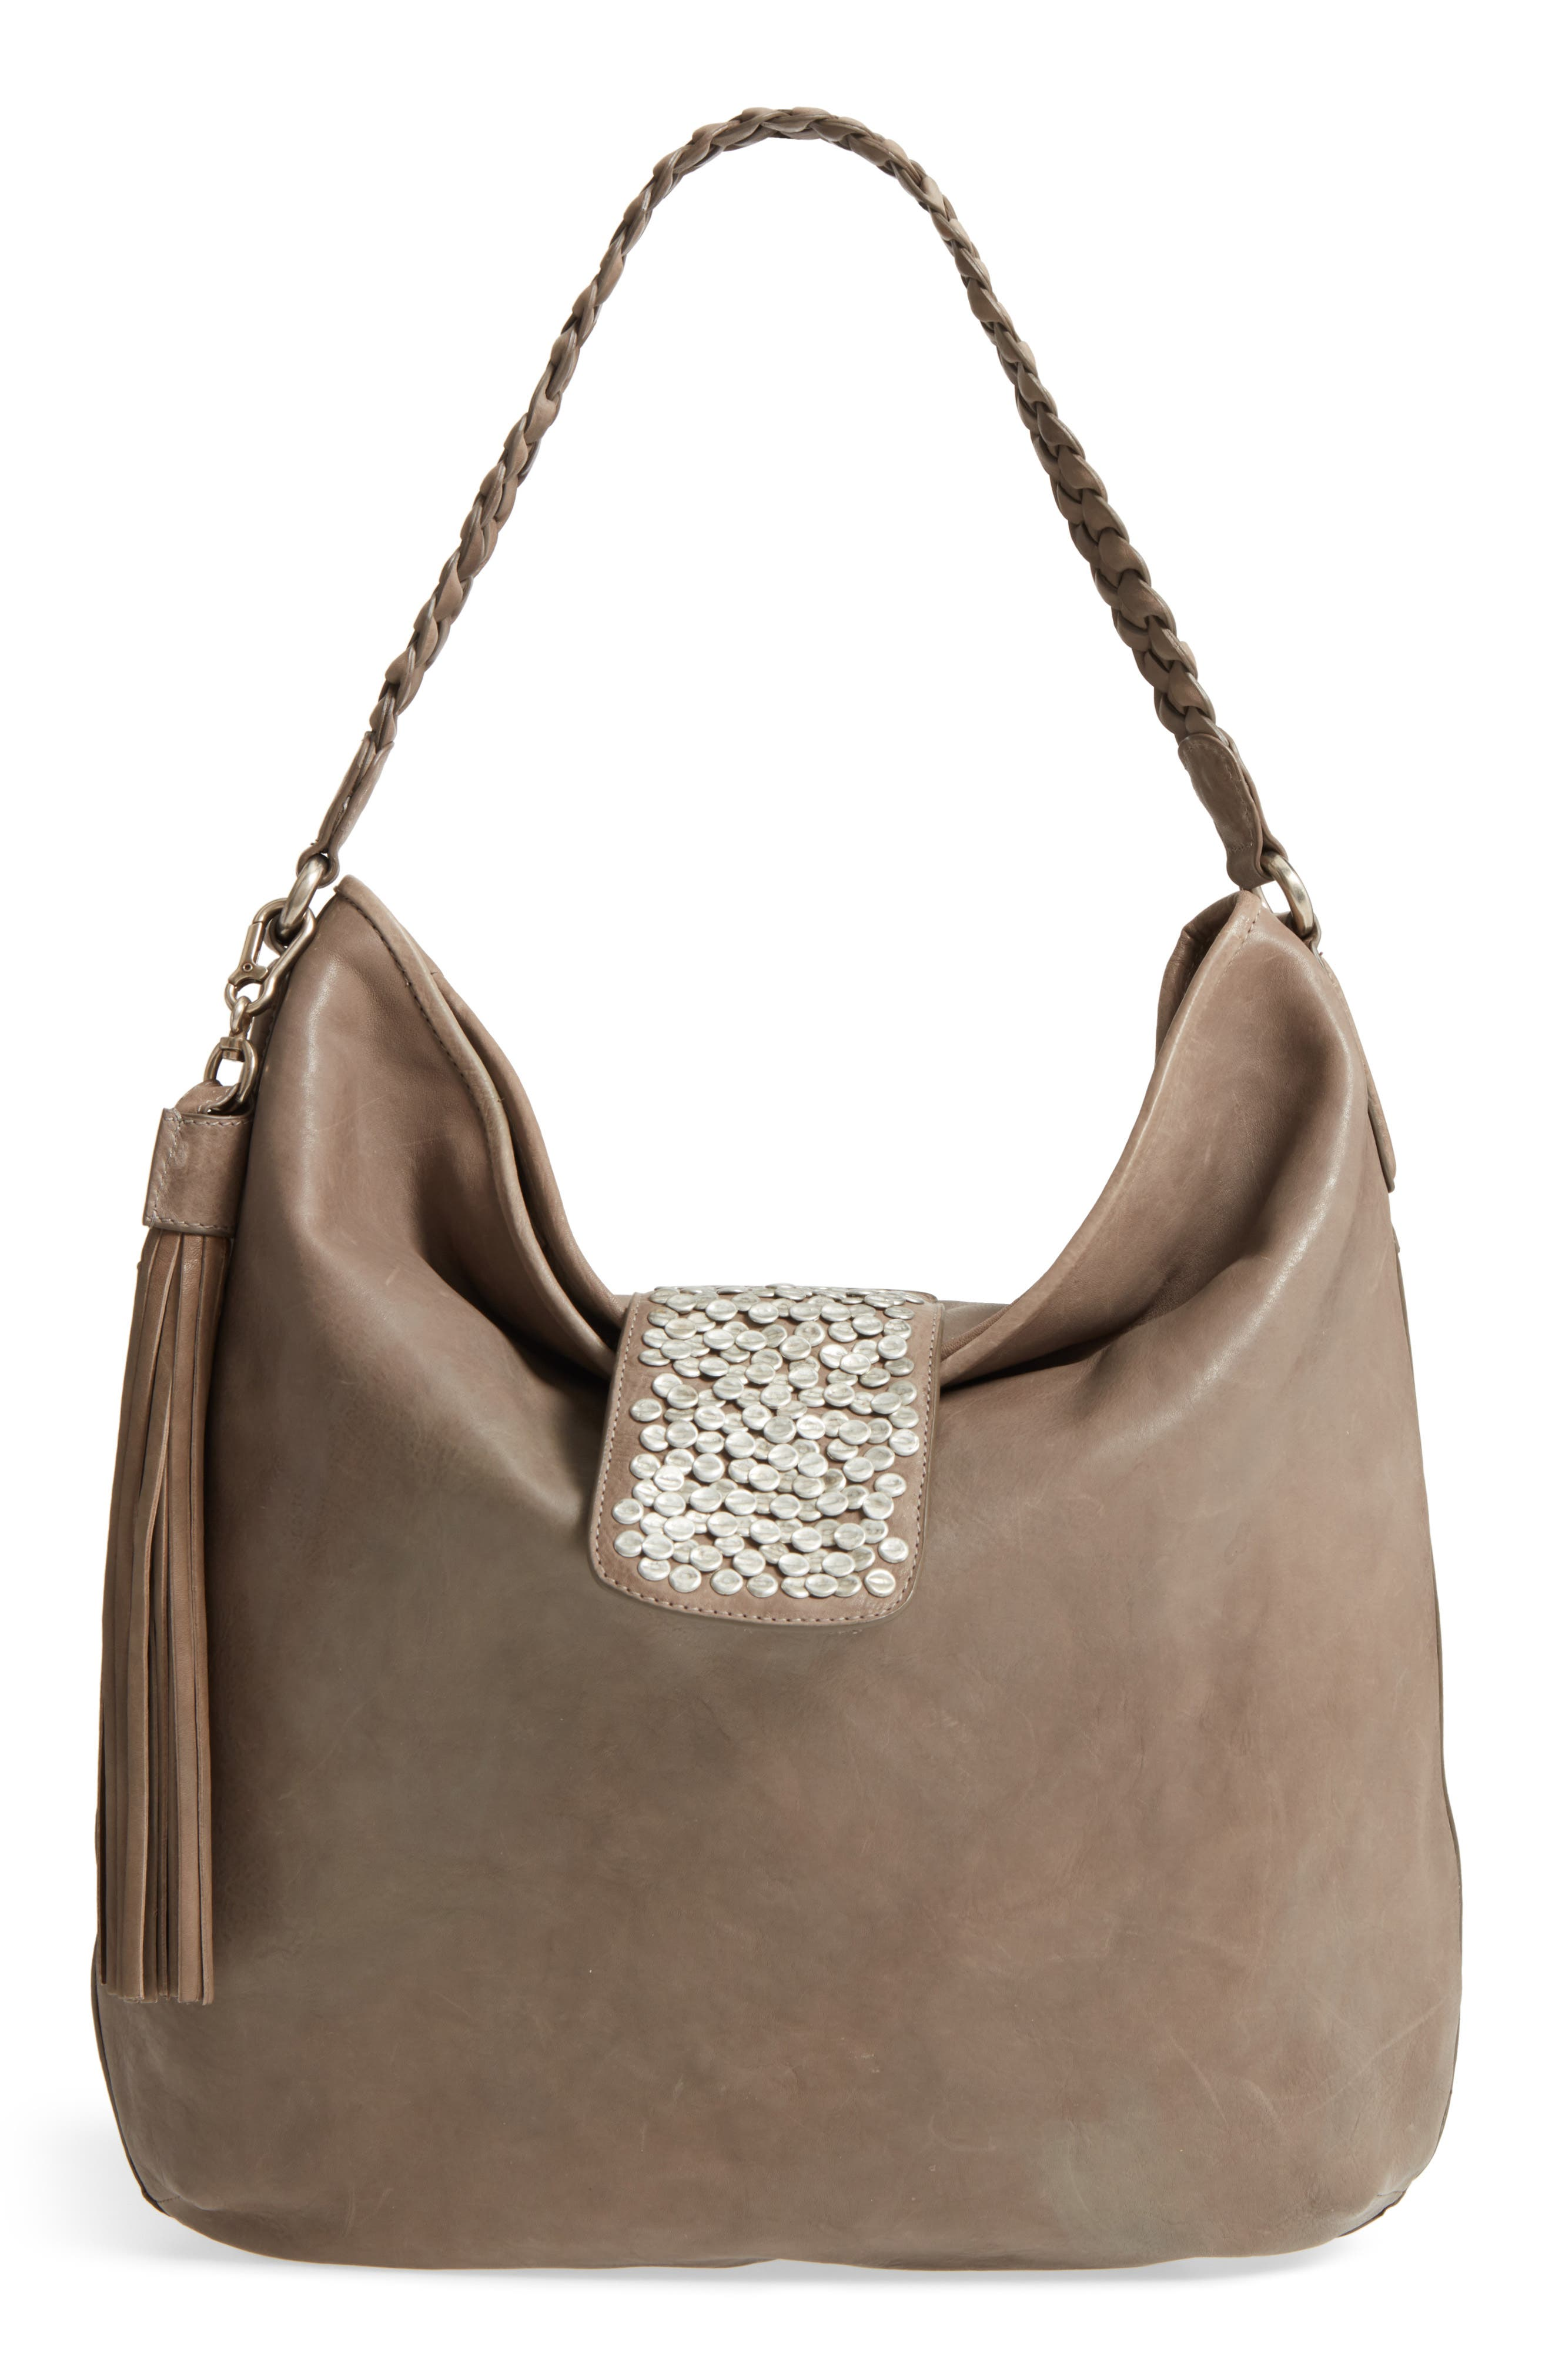 Céline Dion Cadence Leather Hobo Bag